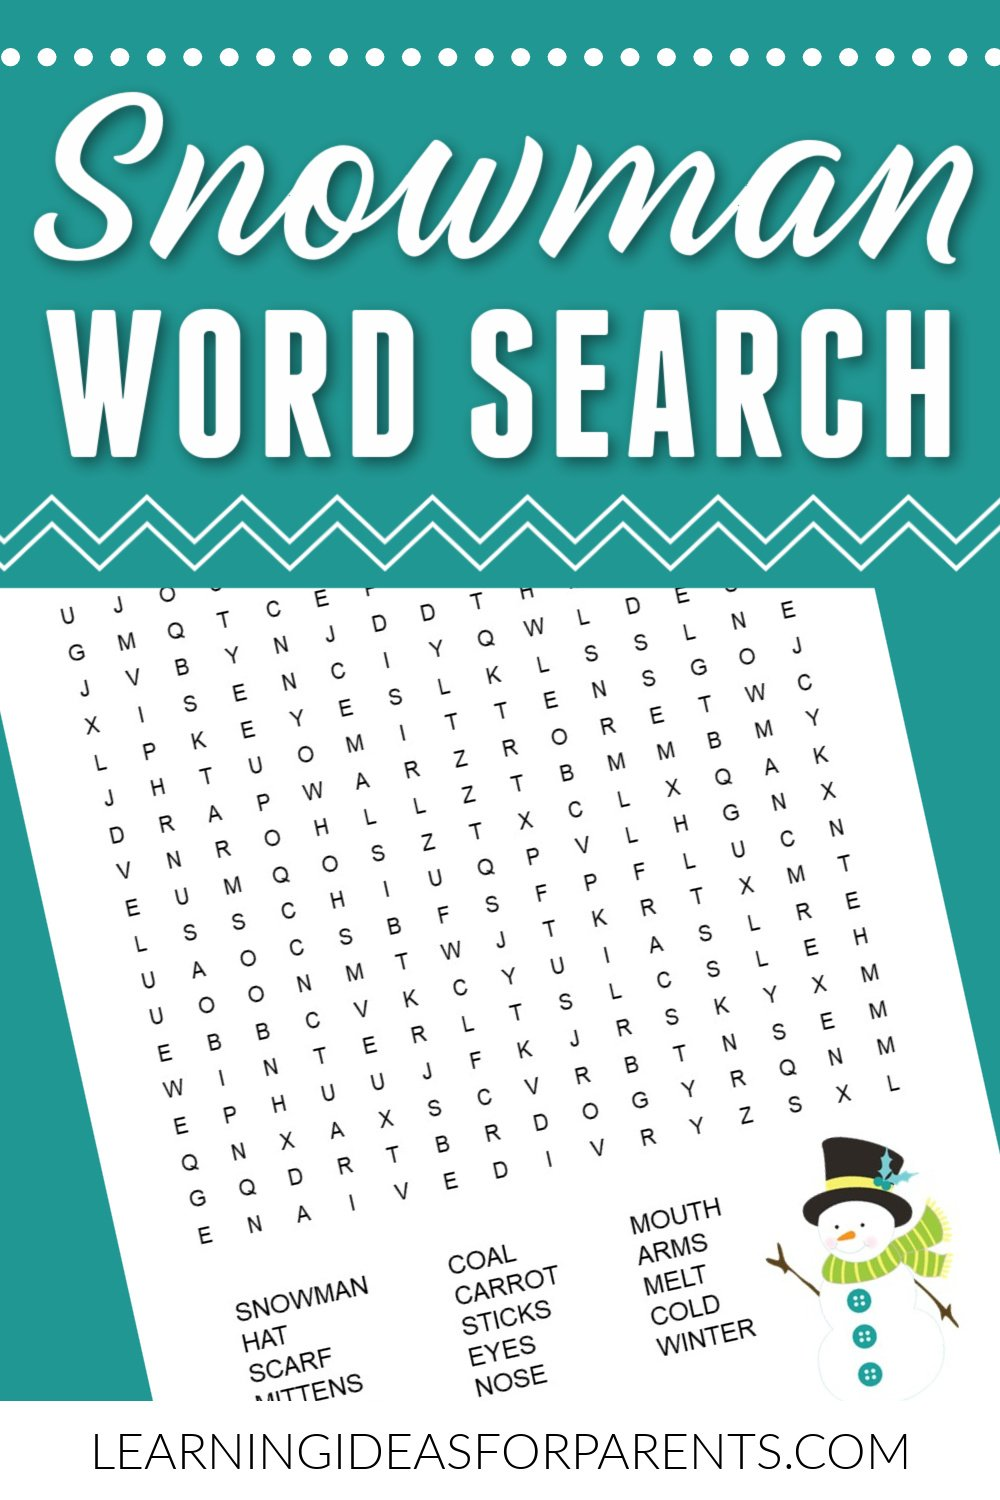 Snowman word search free printable.